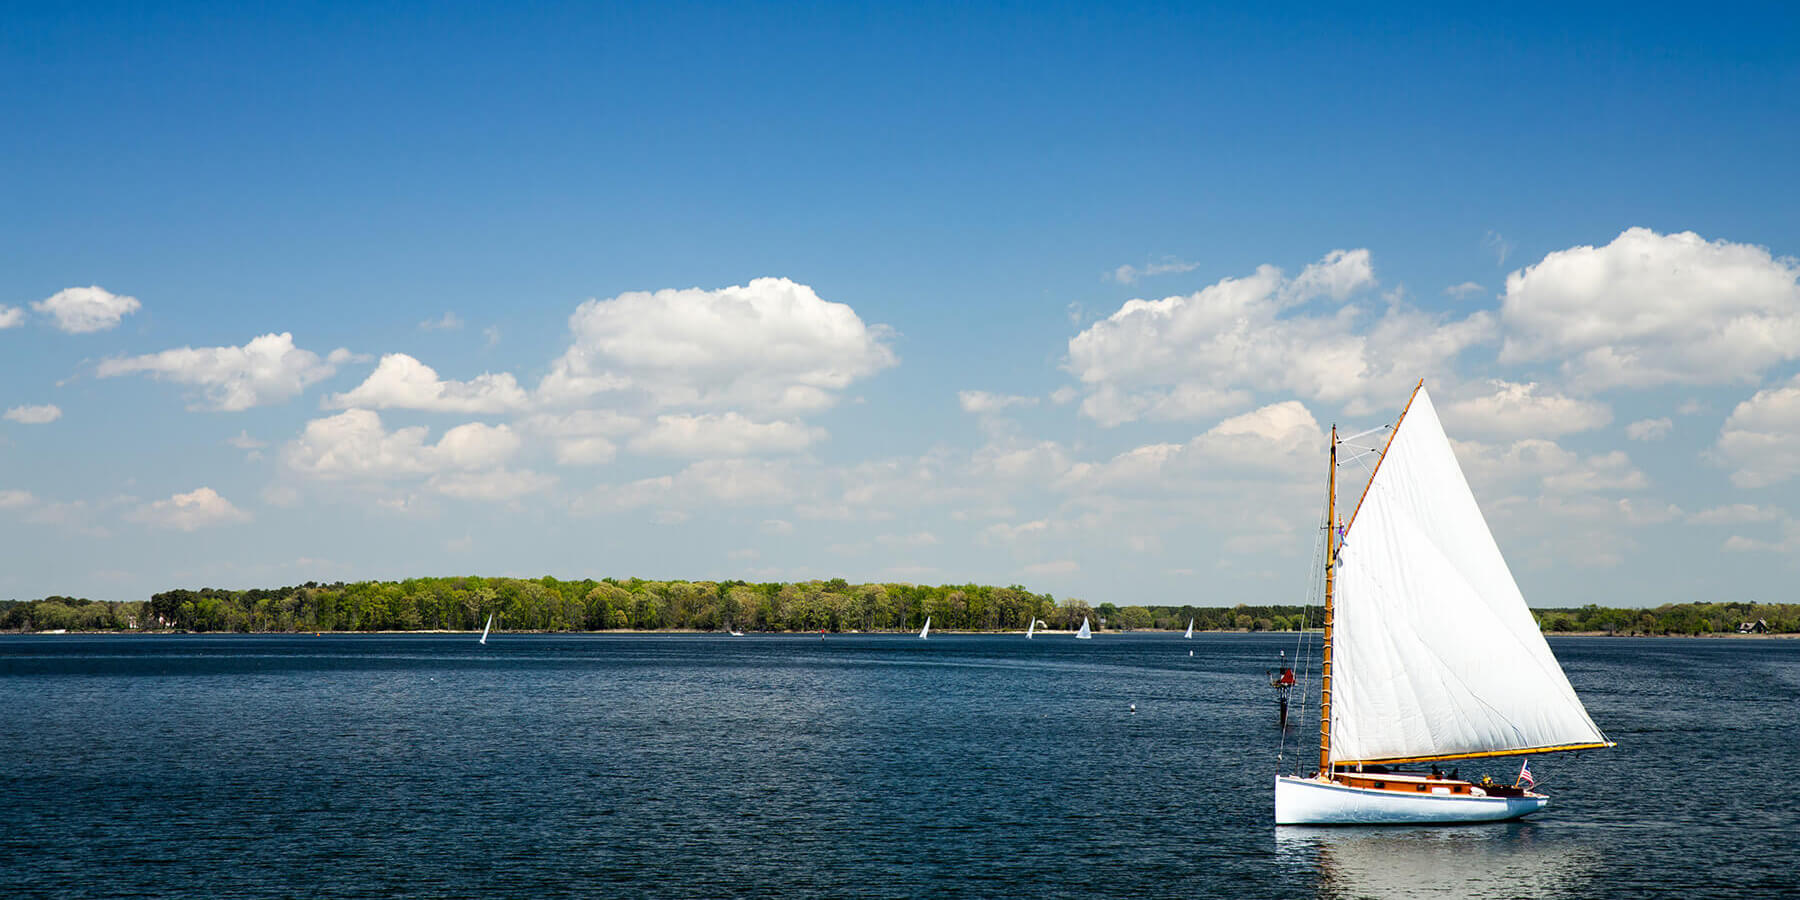 Picture of a sailboat on the Chesapeake Bay